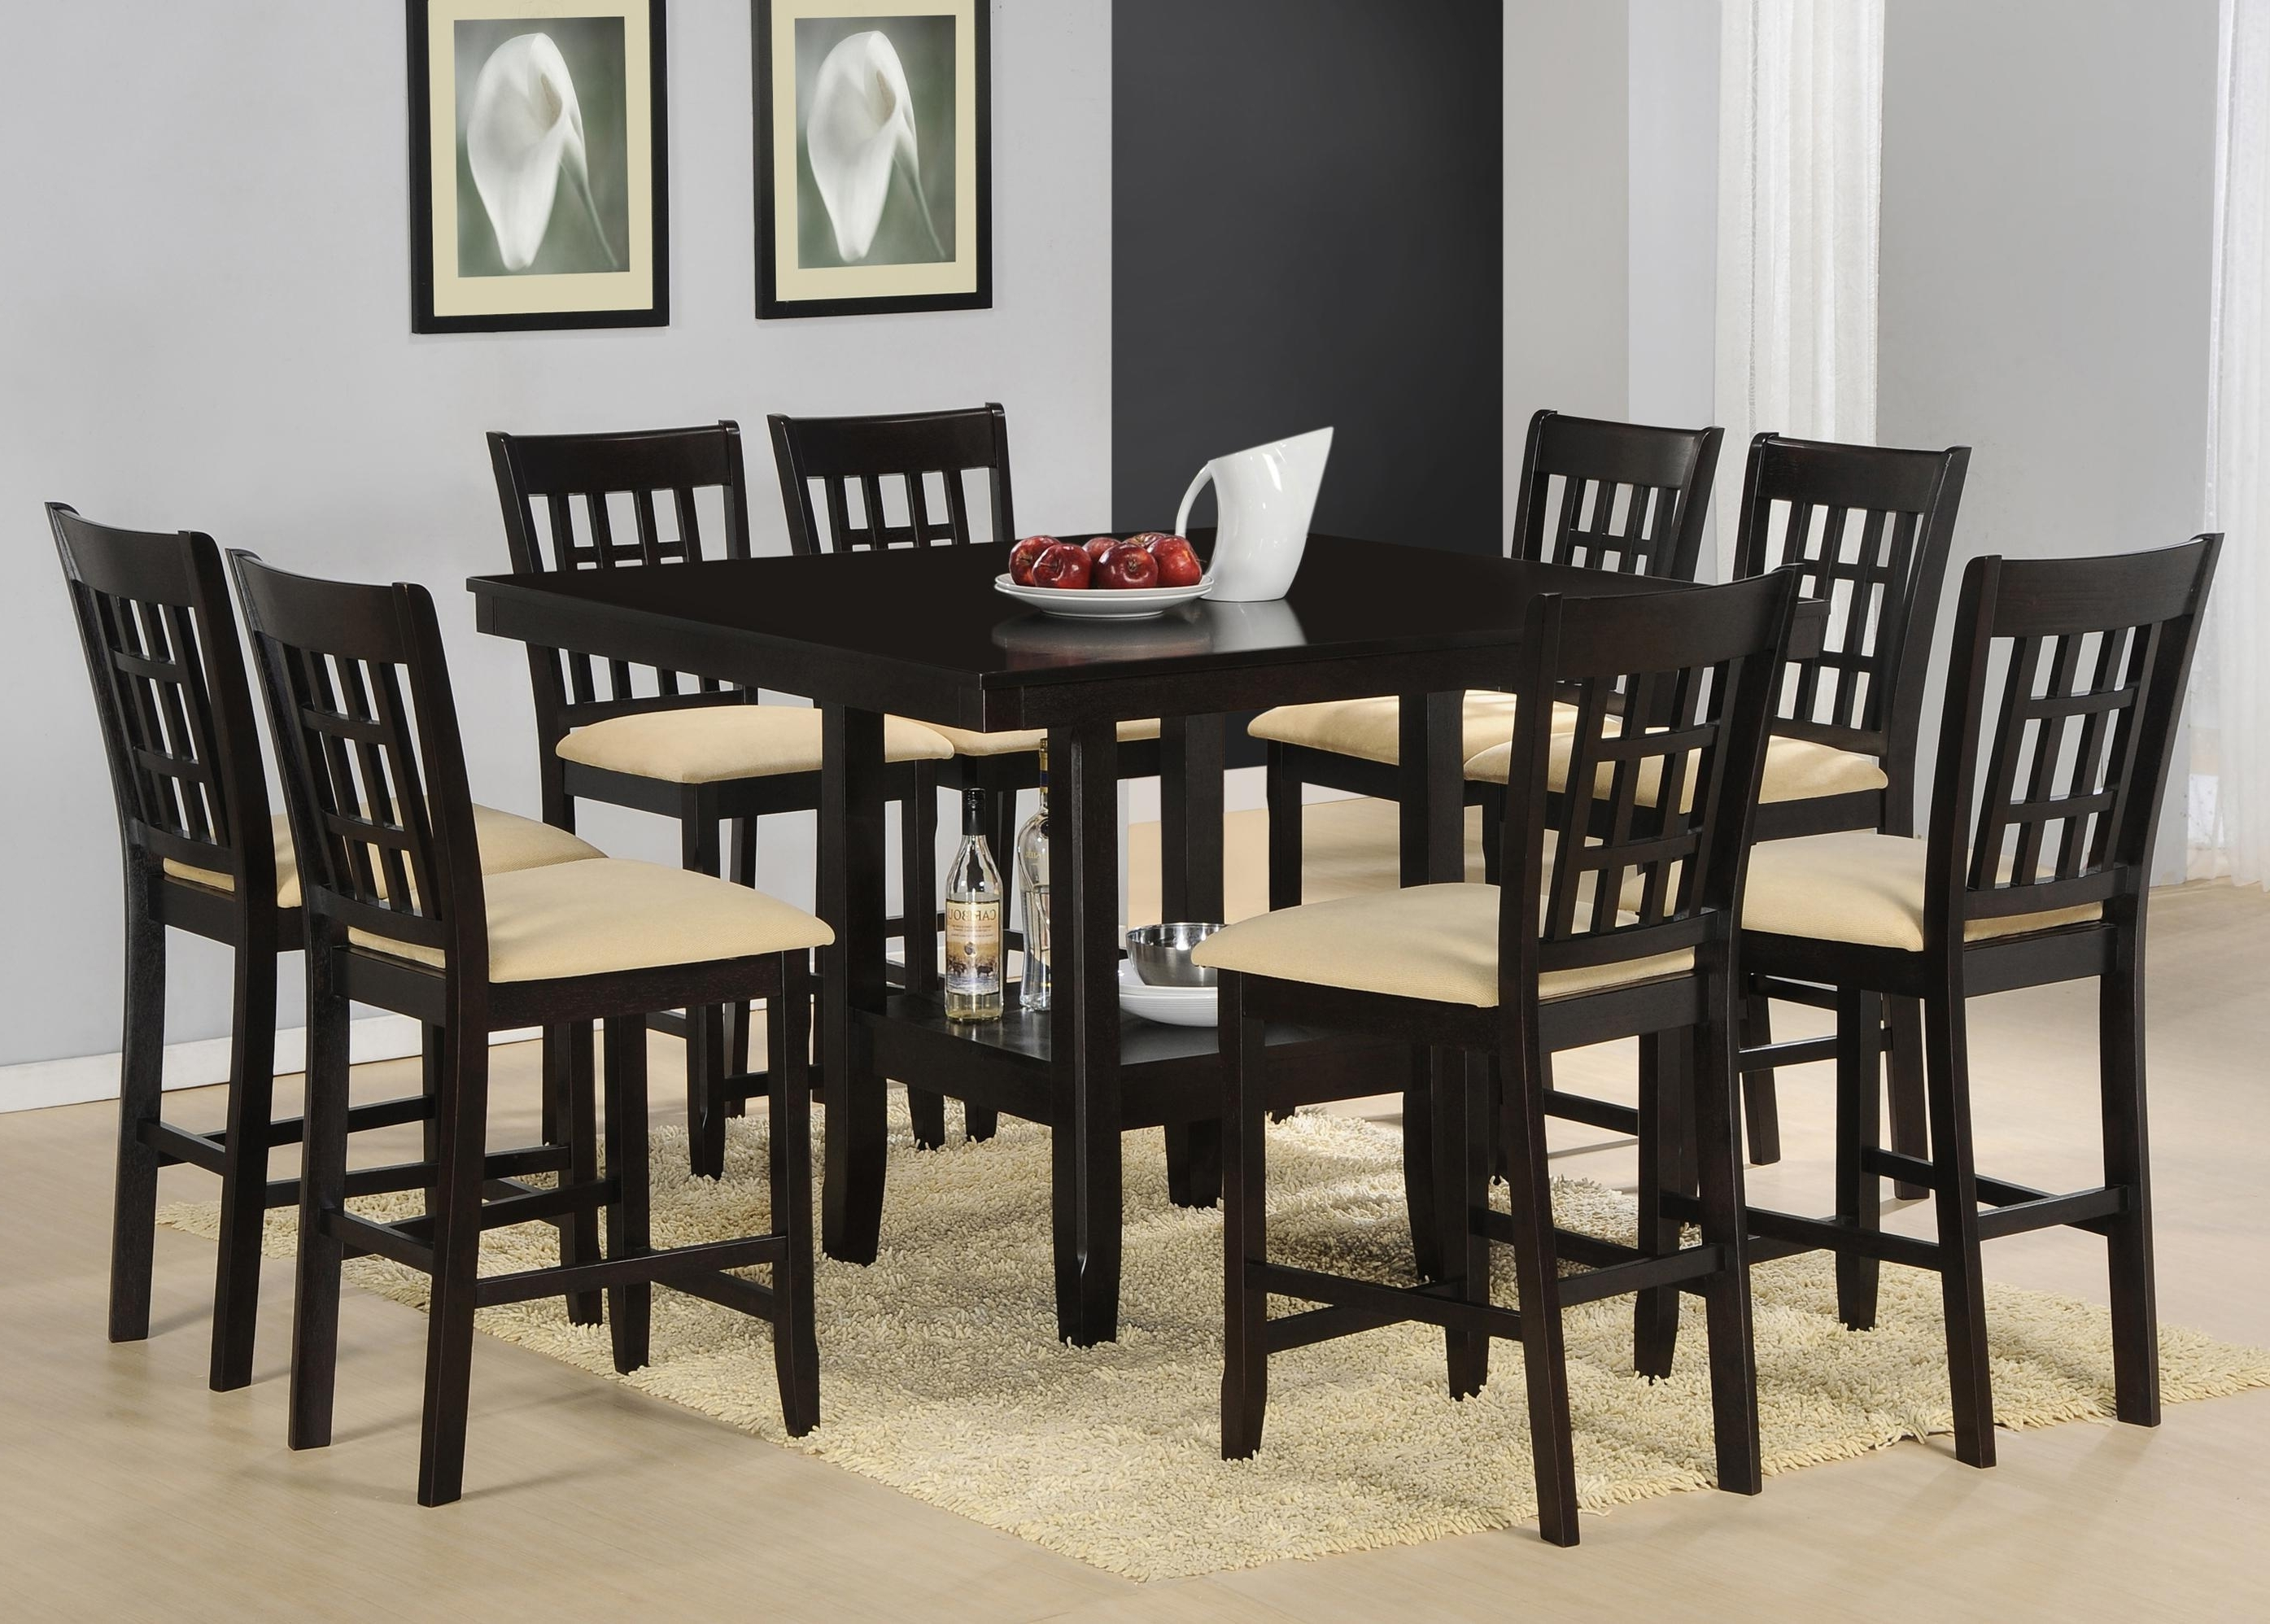 Caira 9 Piece Extension Dining Sets With Regard To Well Known Cheery Caira Piece Extension Set Back Chairs Caira Piece Extension (View 7 of 25)